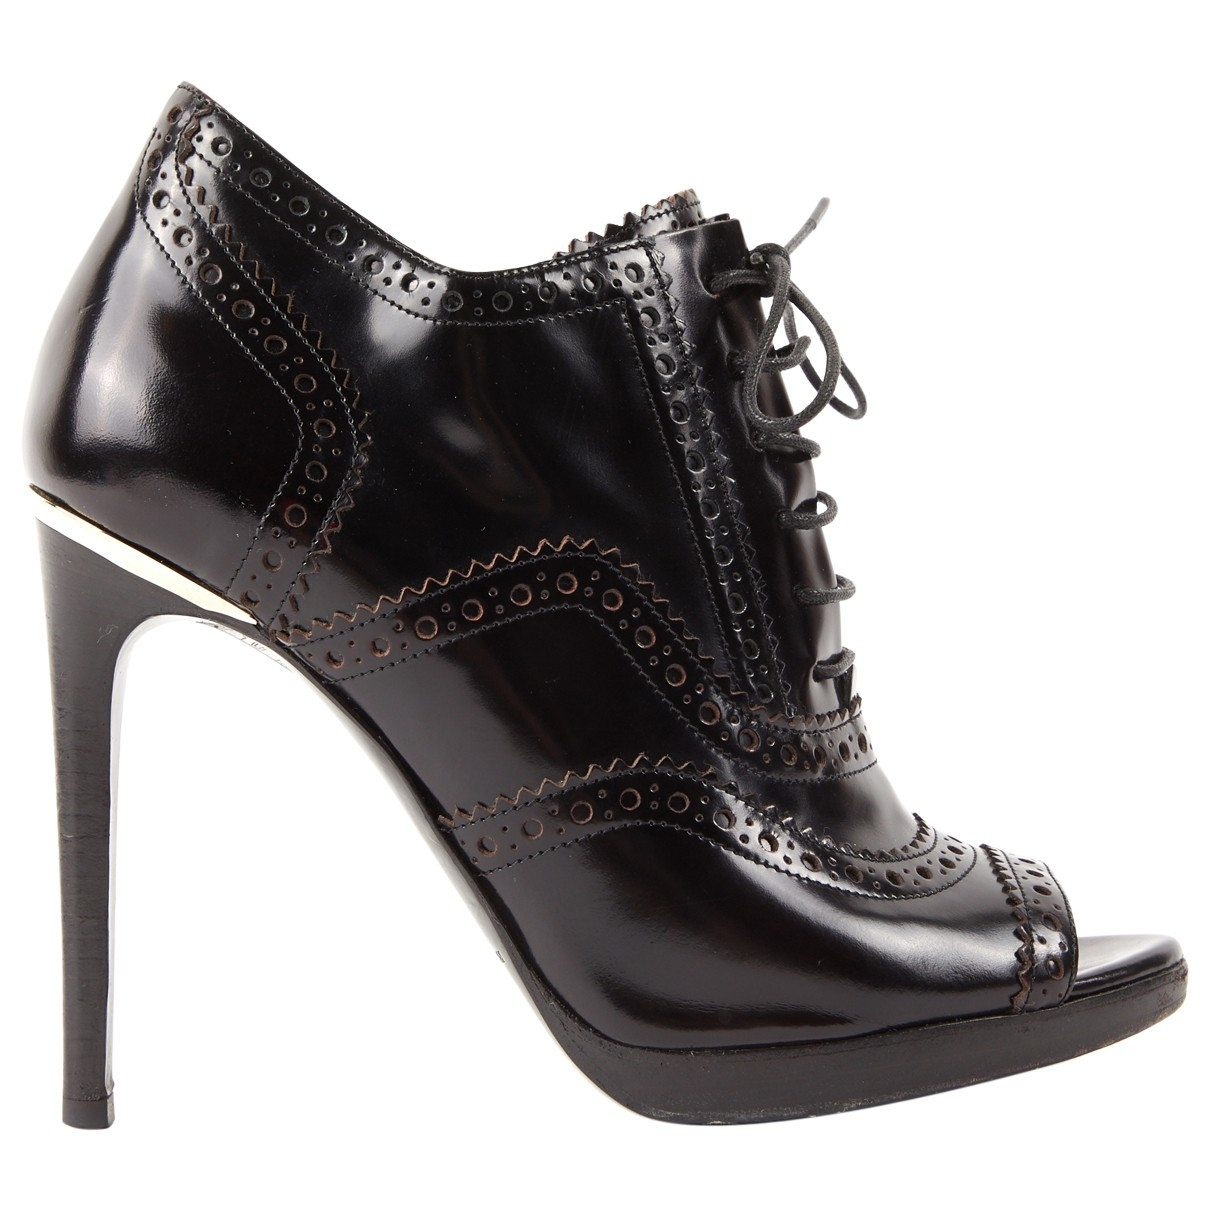 Burberry \N Stiefeletten in  Schwarz Lackleder